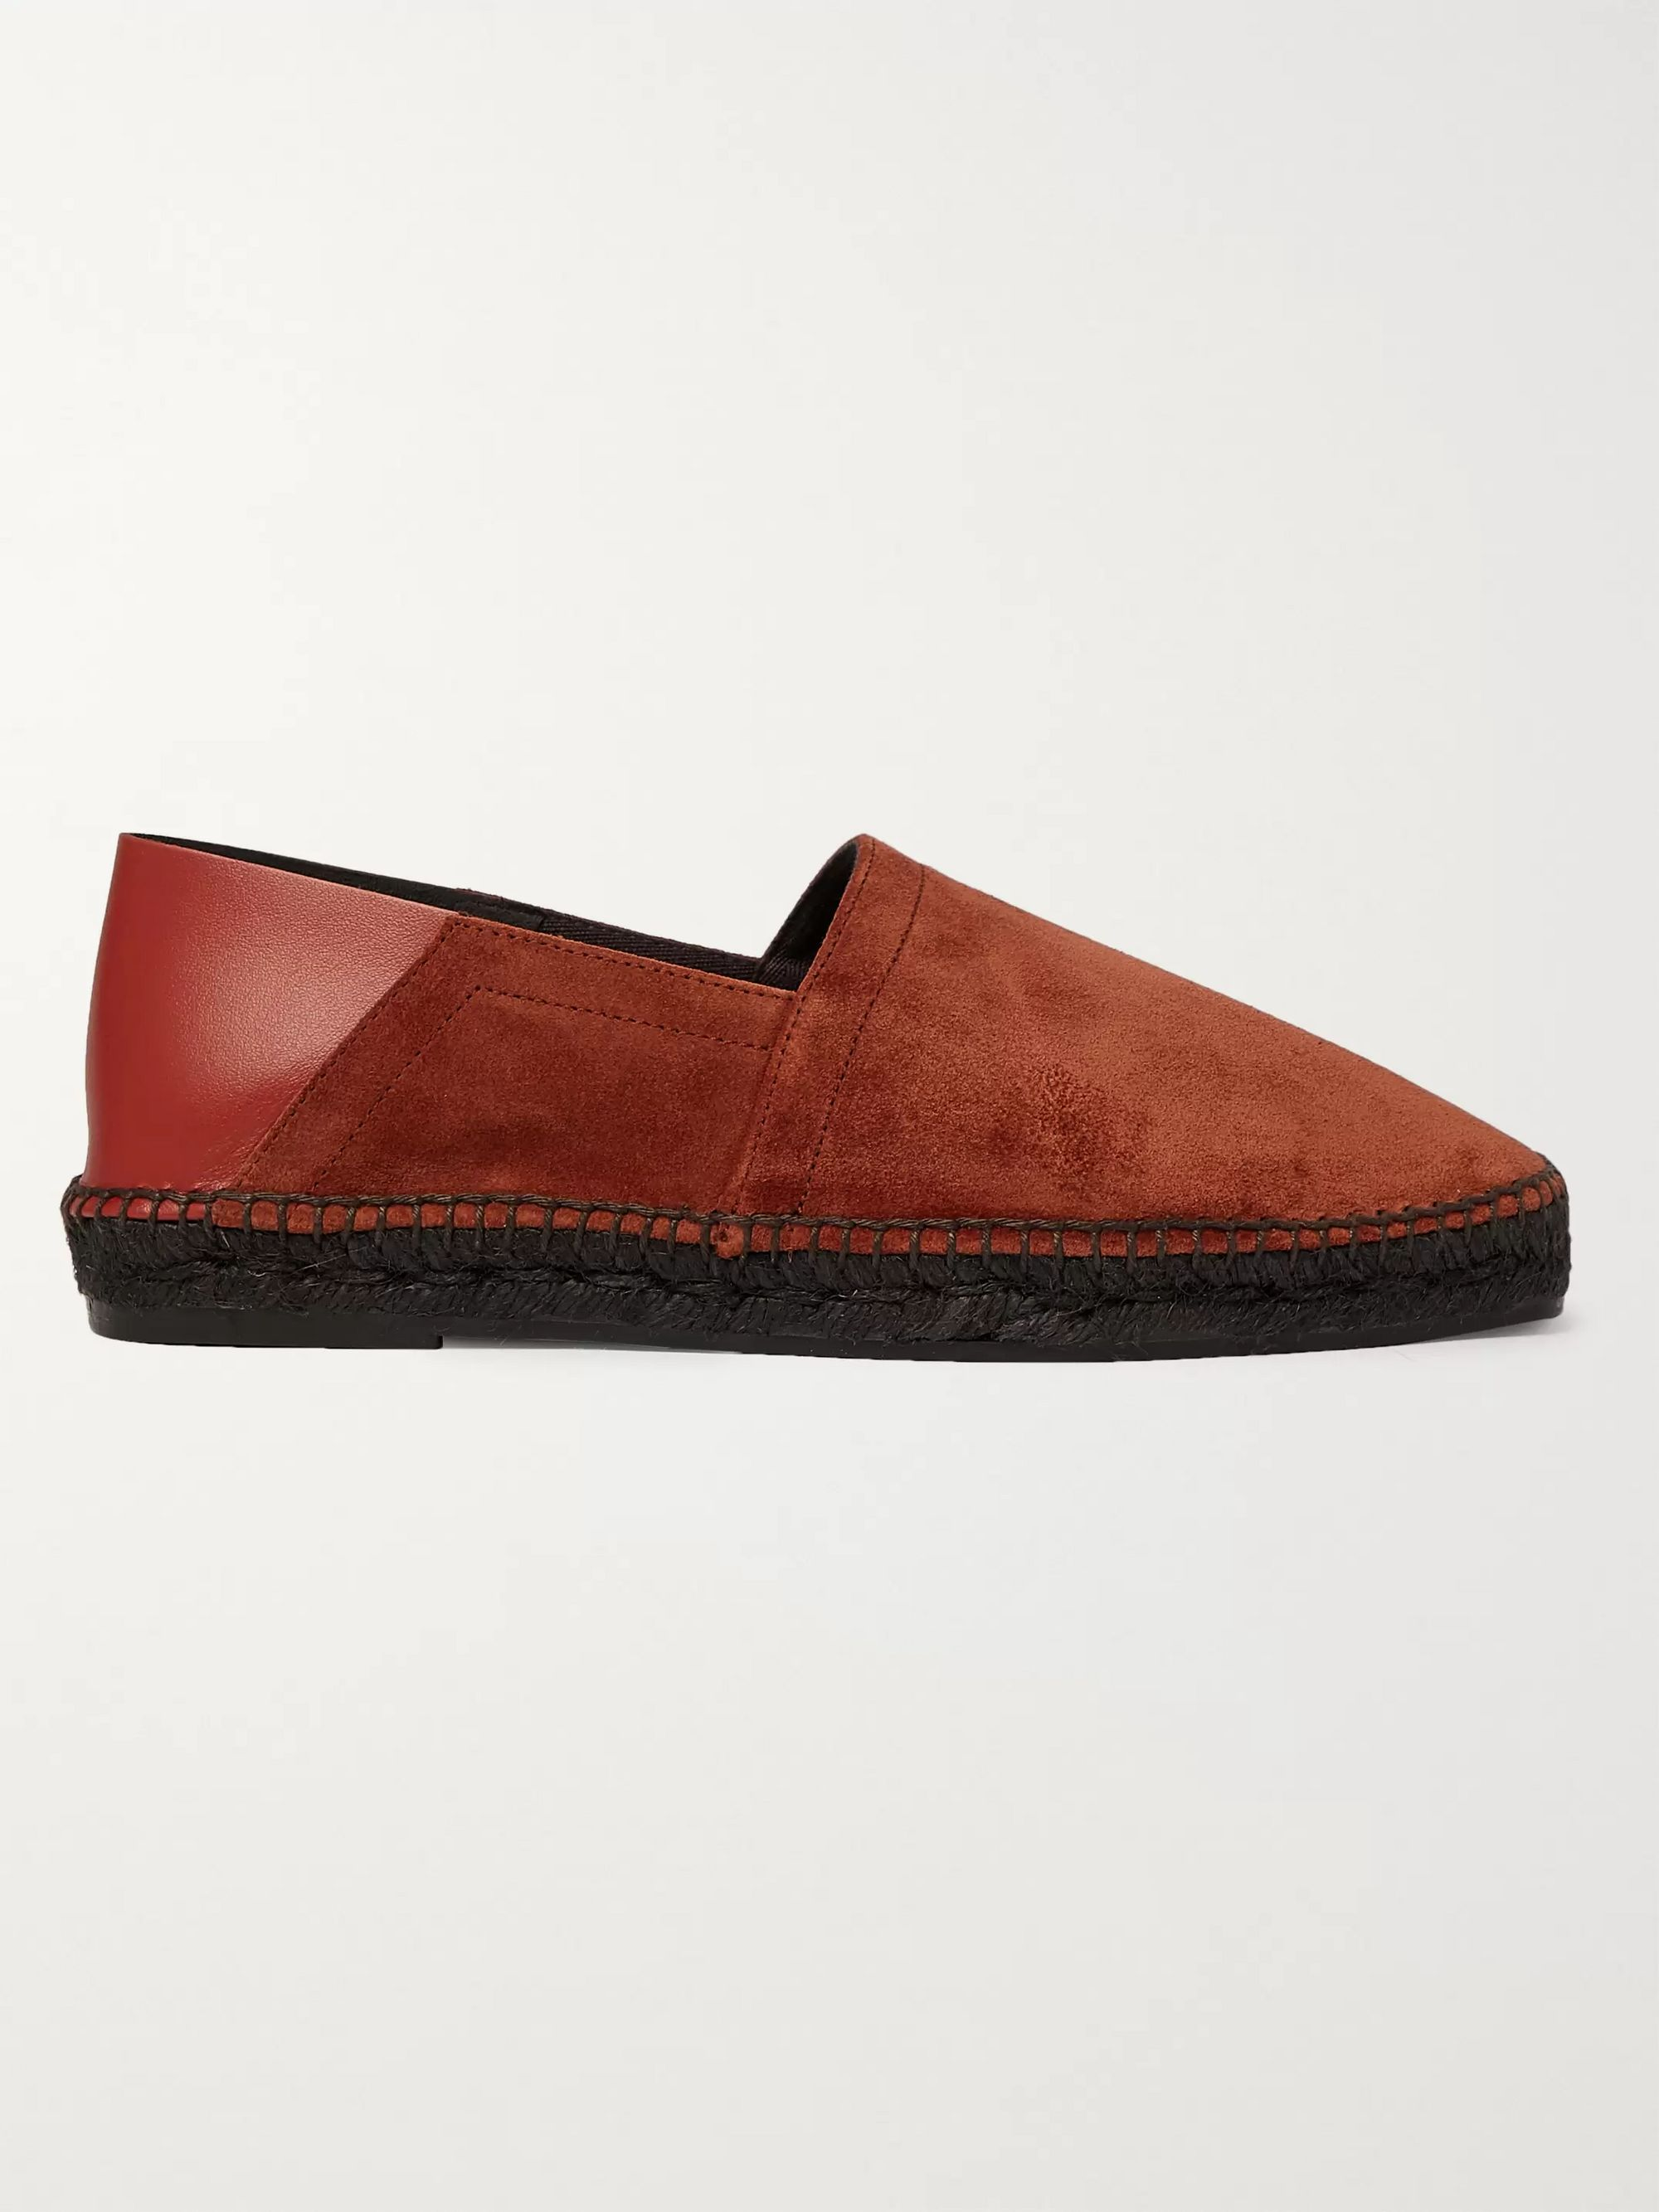 TOM FORD Barnes Collapsible-Heel Suede and Leather Espadrilles